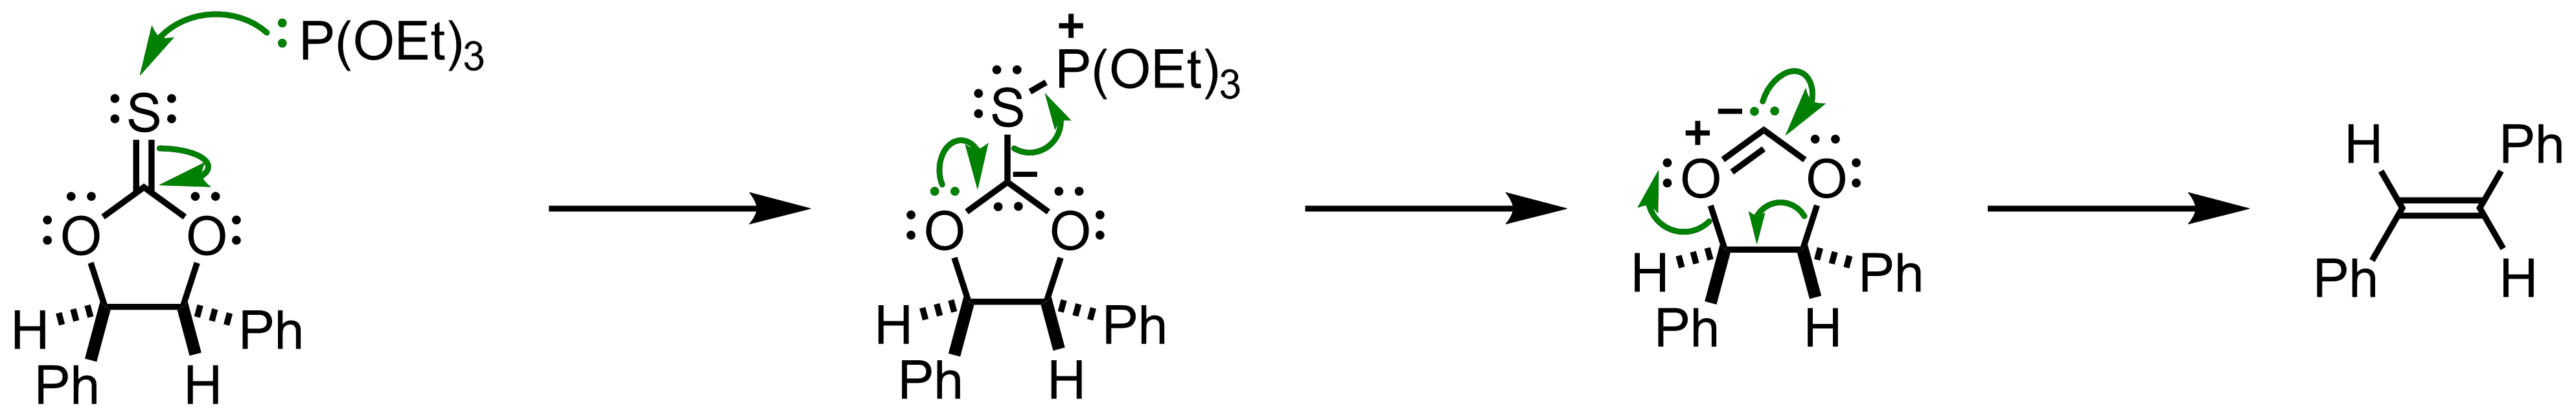 Mechanism of the Corey-Winter Olefin Synthesis